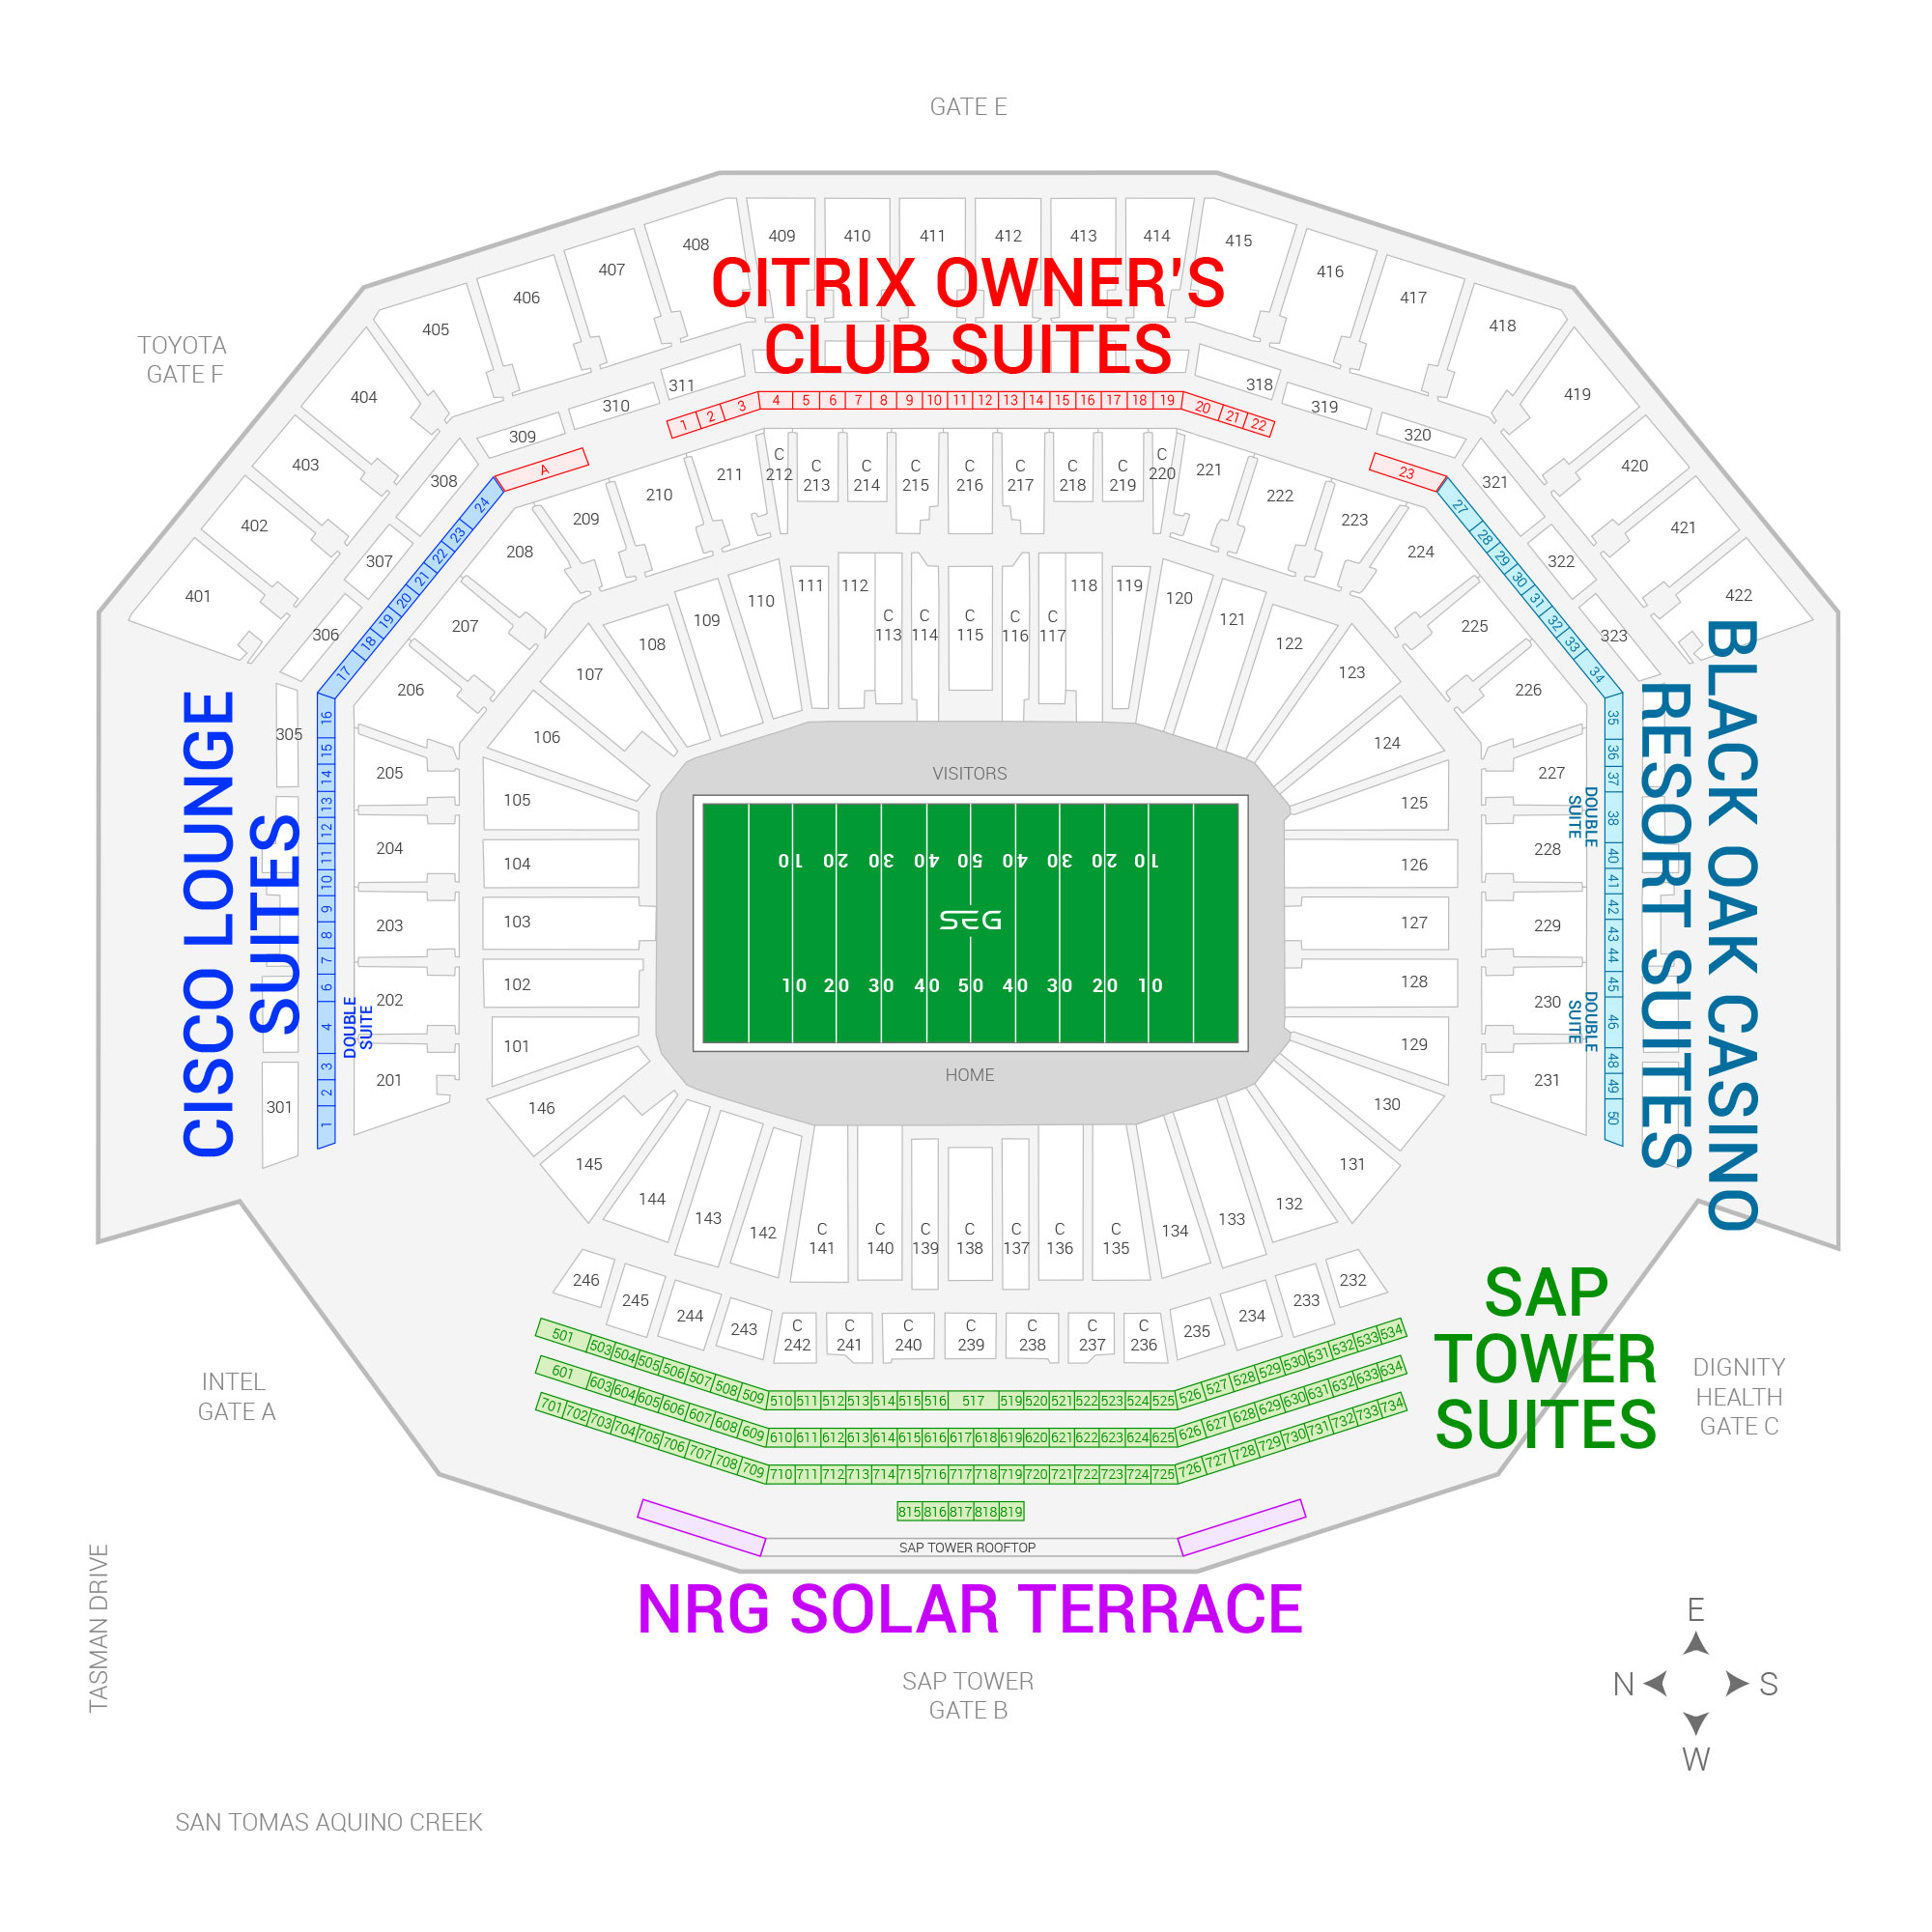 Levi's Stadium / 2019 College Football Playoff National Championship Suite Map and Seating Chart